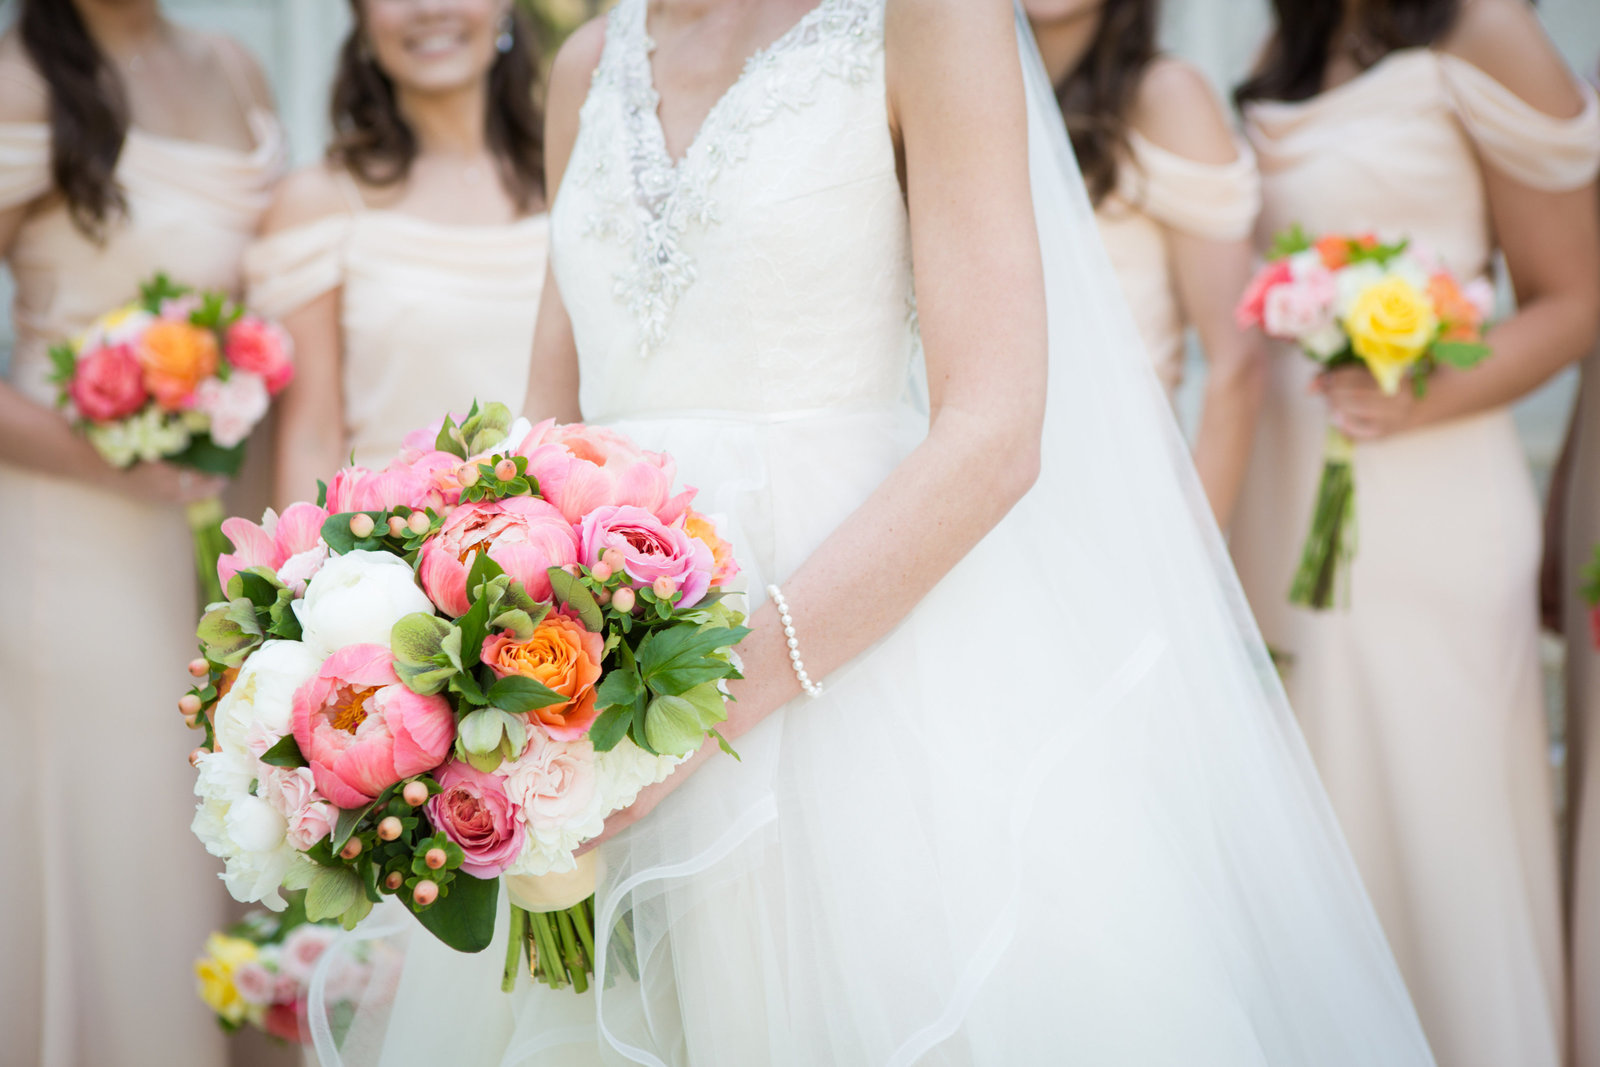 coral-and-peach-bridal-bouquet_27024852021_o